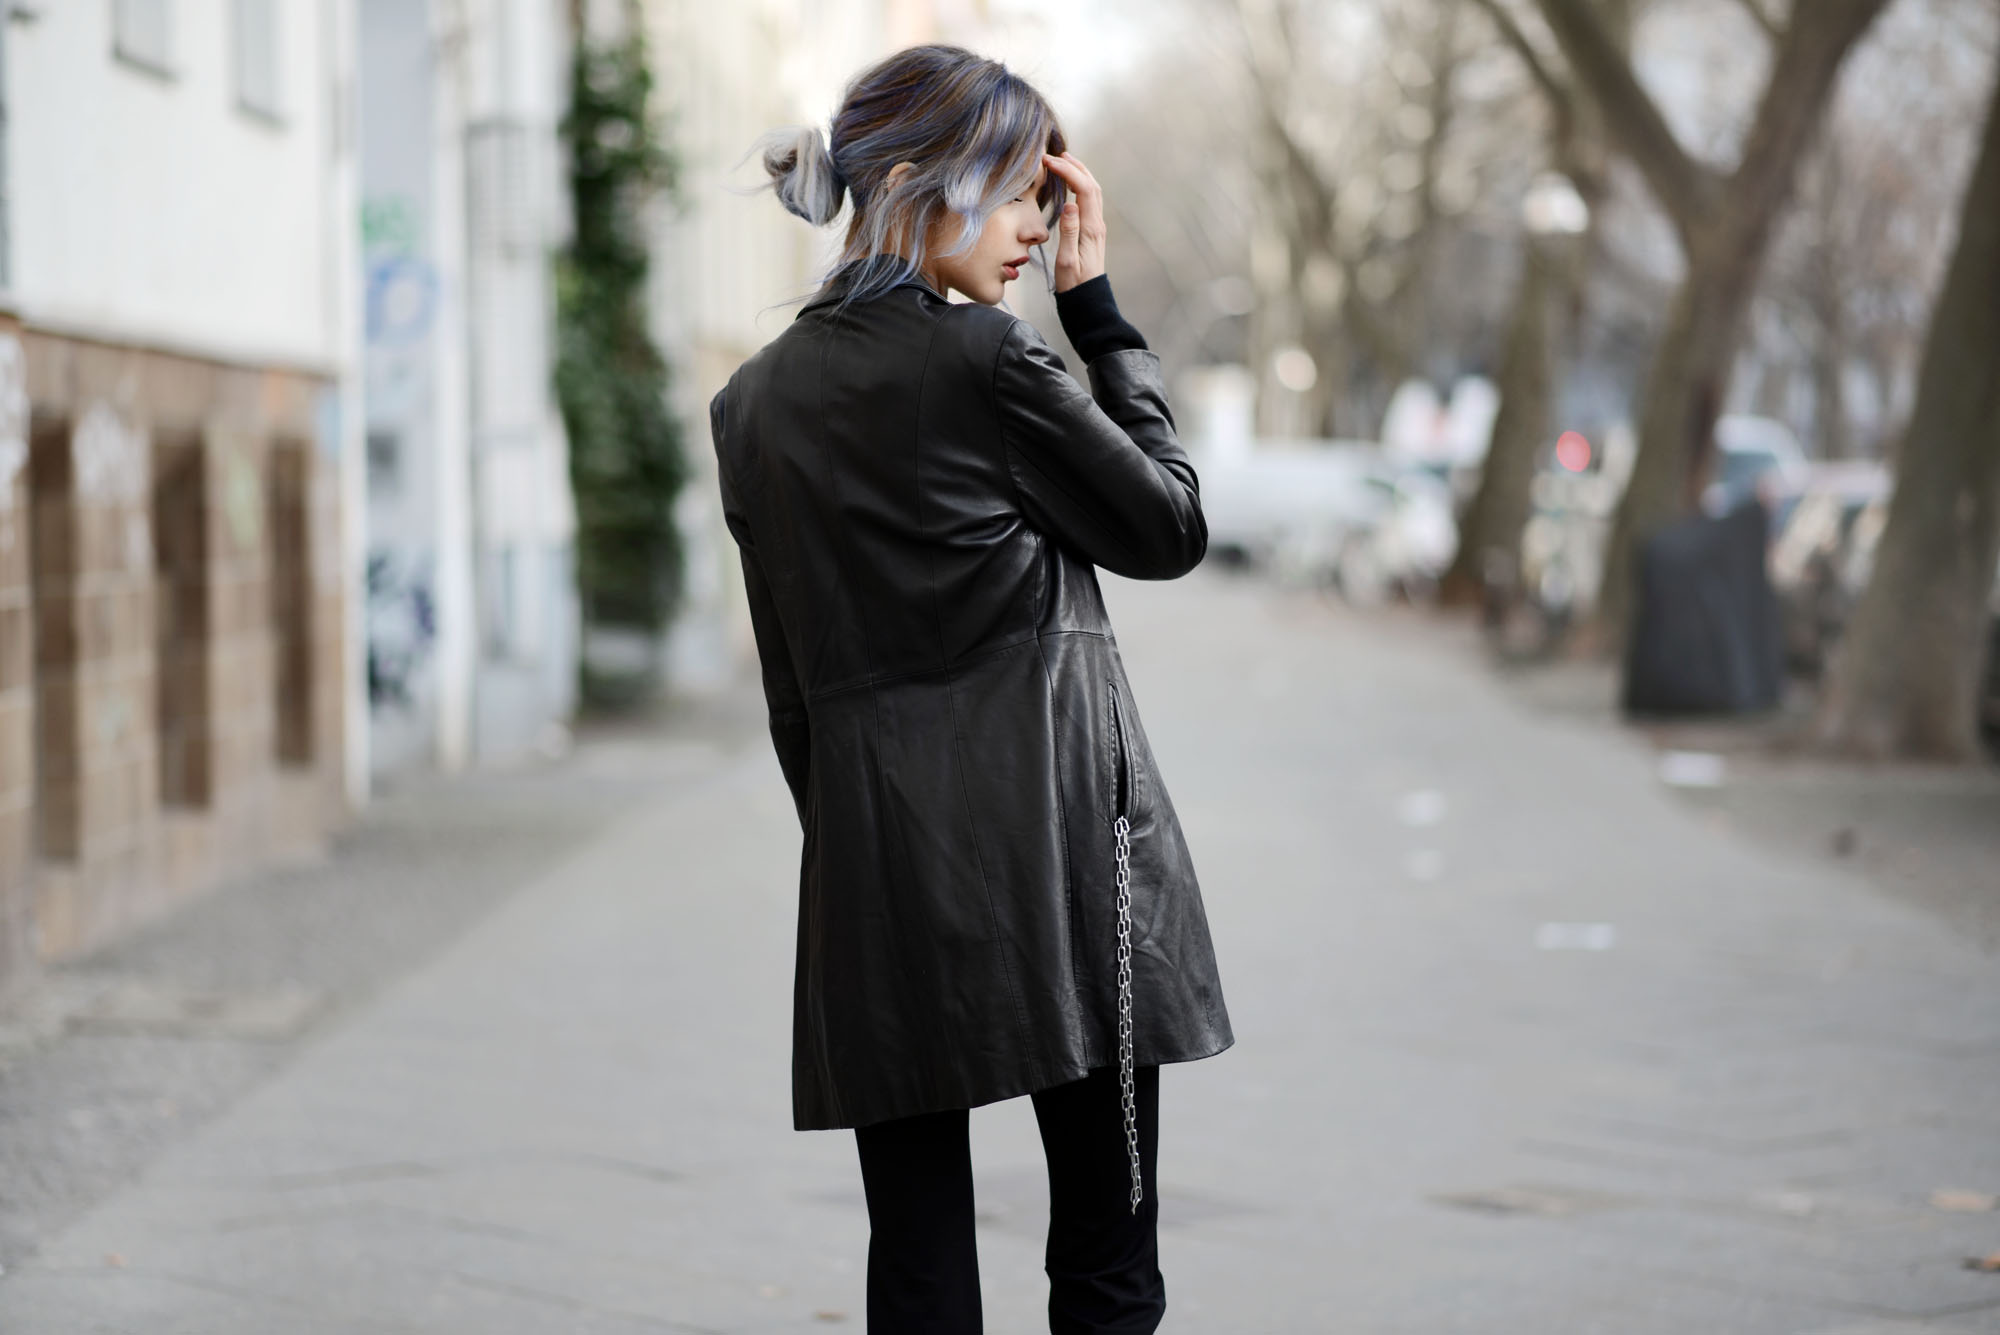 843df701c1e Jacket- 2hand, pants- AQ/AQ, cashmere sweater from Mongolia, vans, keychain  from bauhaus.